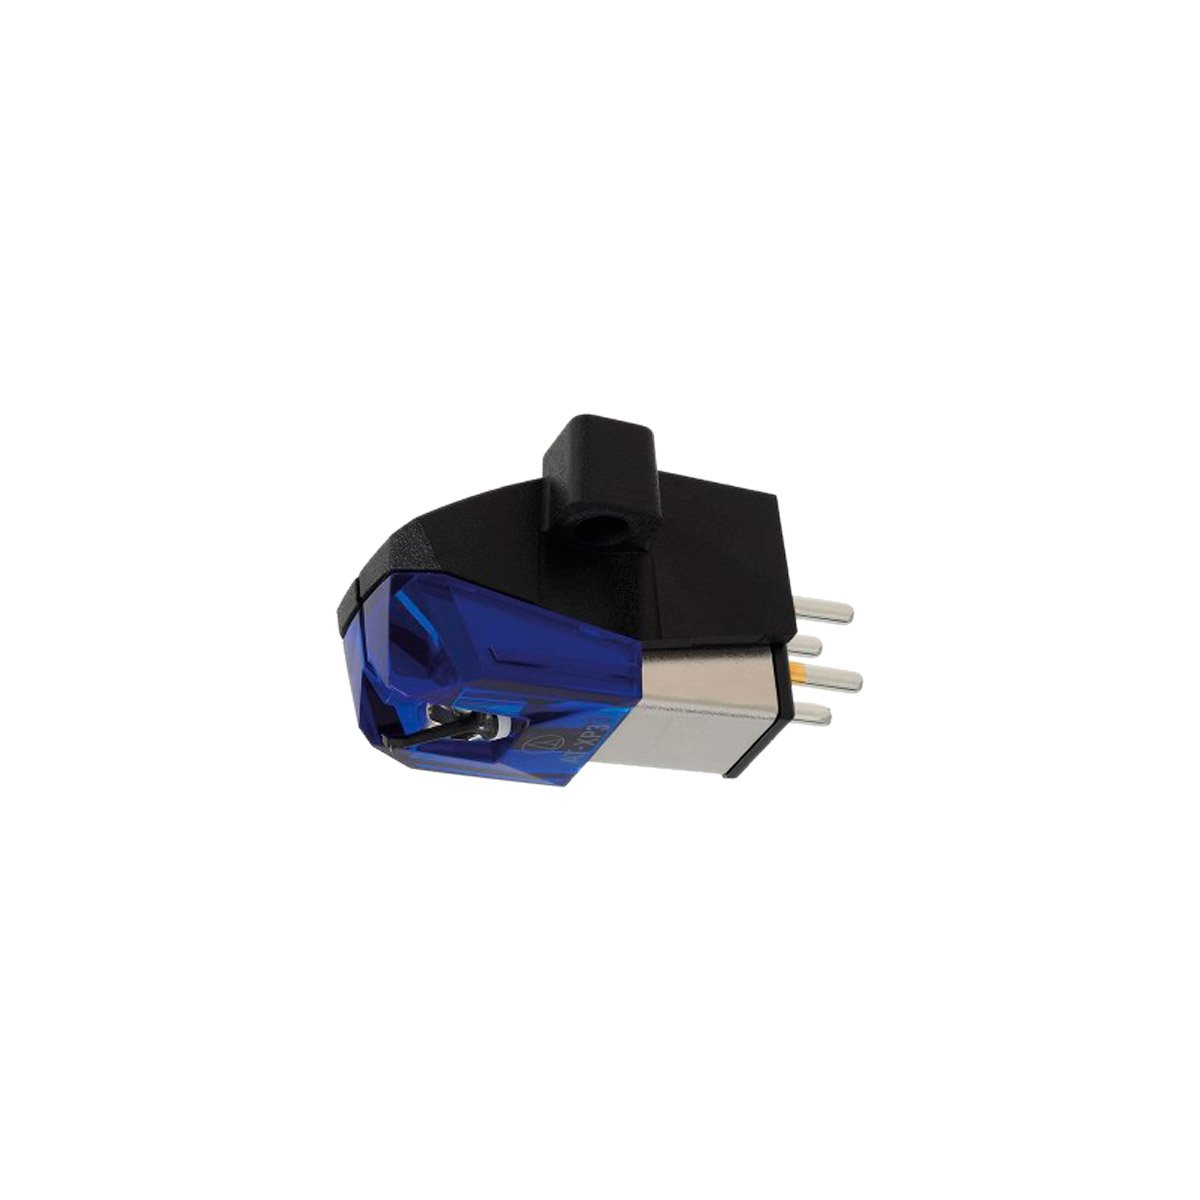 Audio-Technica AT-XP3 Moving Magnet DJ Cartridge